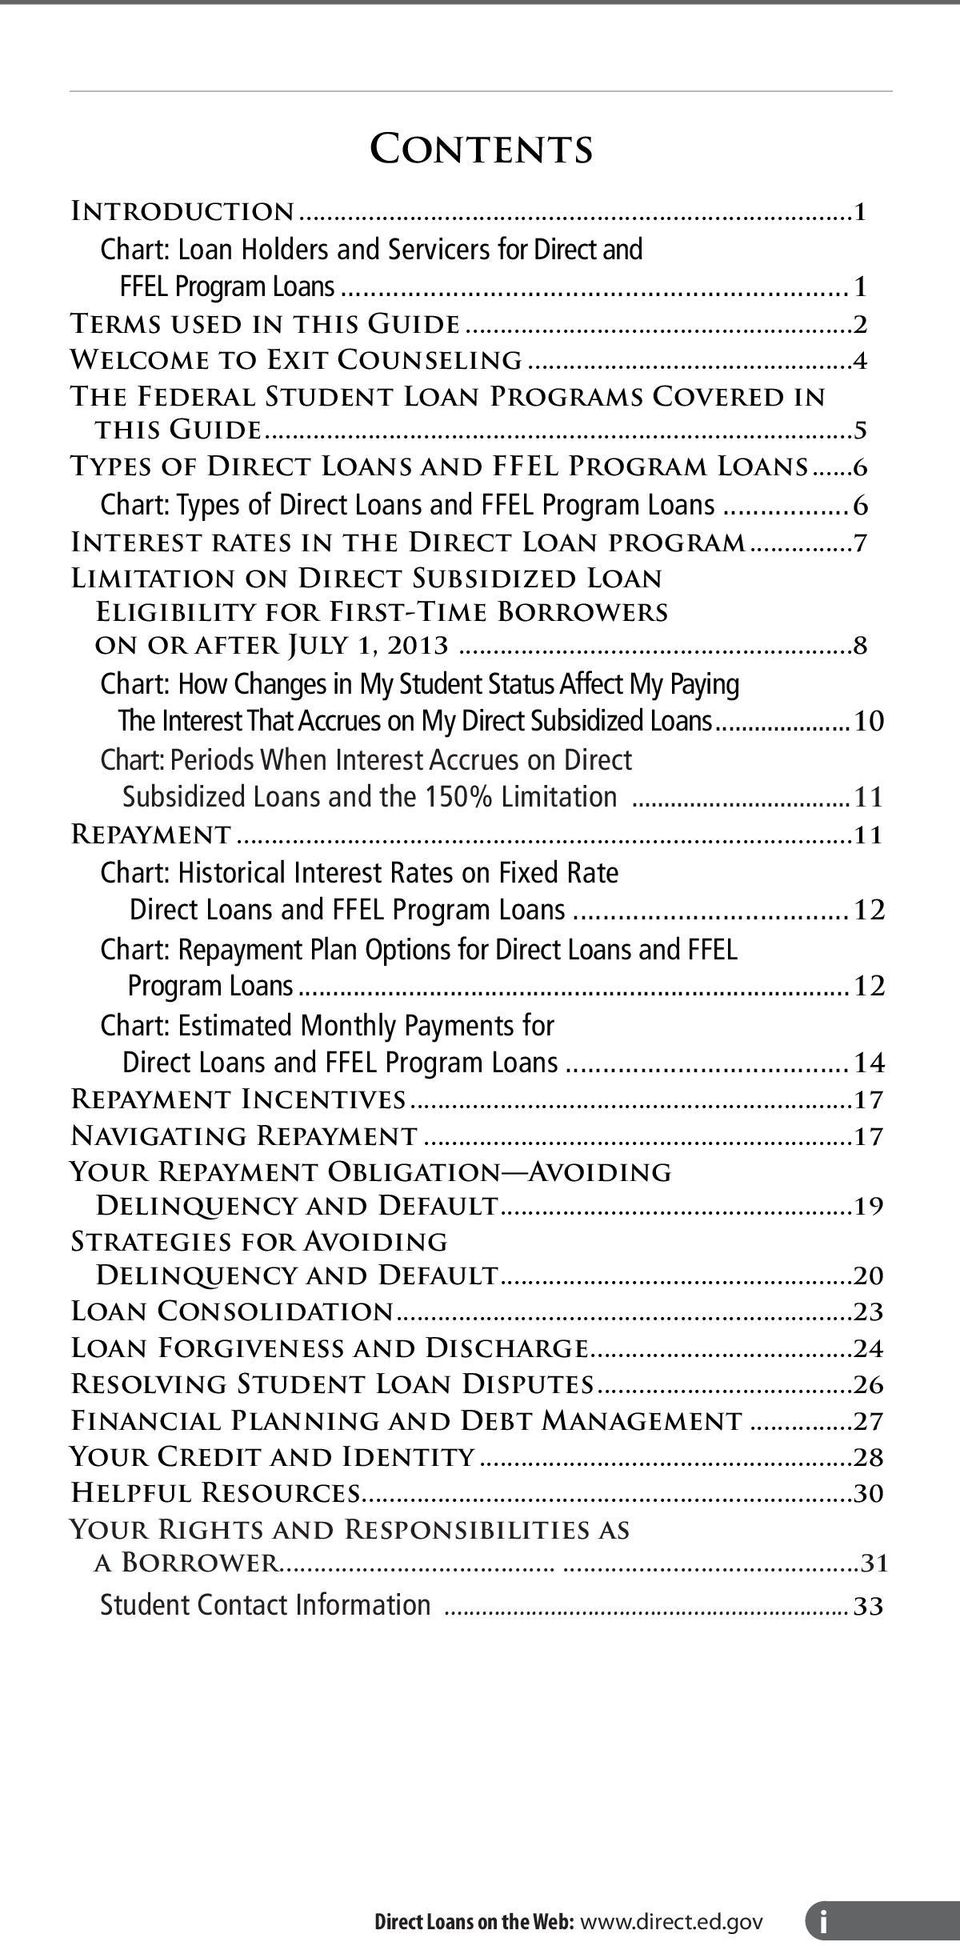 .. 6 Interest rates in the Direct Loan program...7 Limitation on Direct Subsidized Loan Eligibility for First-Time Borrowers on or after July 1, 2013.